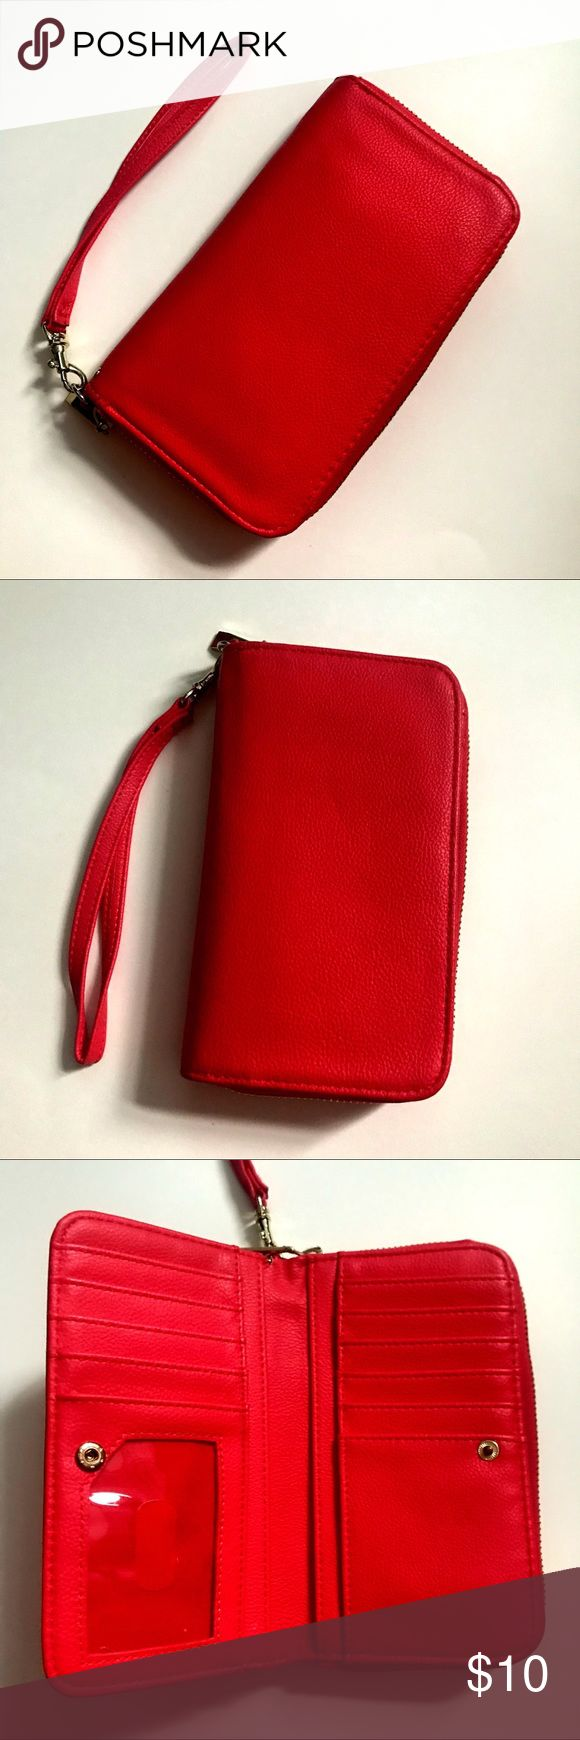 Red Clutch Wallet Adorable and simple red clutch, detachable wrist strap, easy to organize and use as a regular wallet or simple clutch when going out. - One size - Clutch/wallet - Great condition - Dark pink/Red - Nonsmoking house Nordstrom Bags Clutches & Wristlets